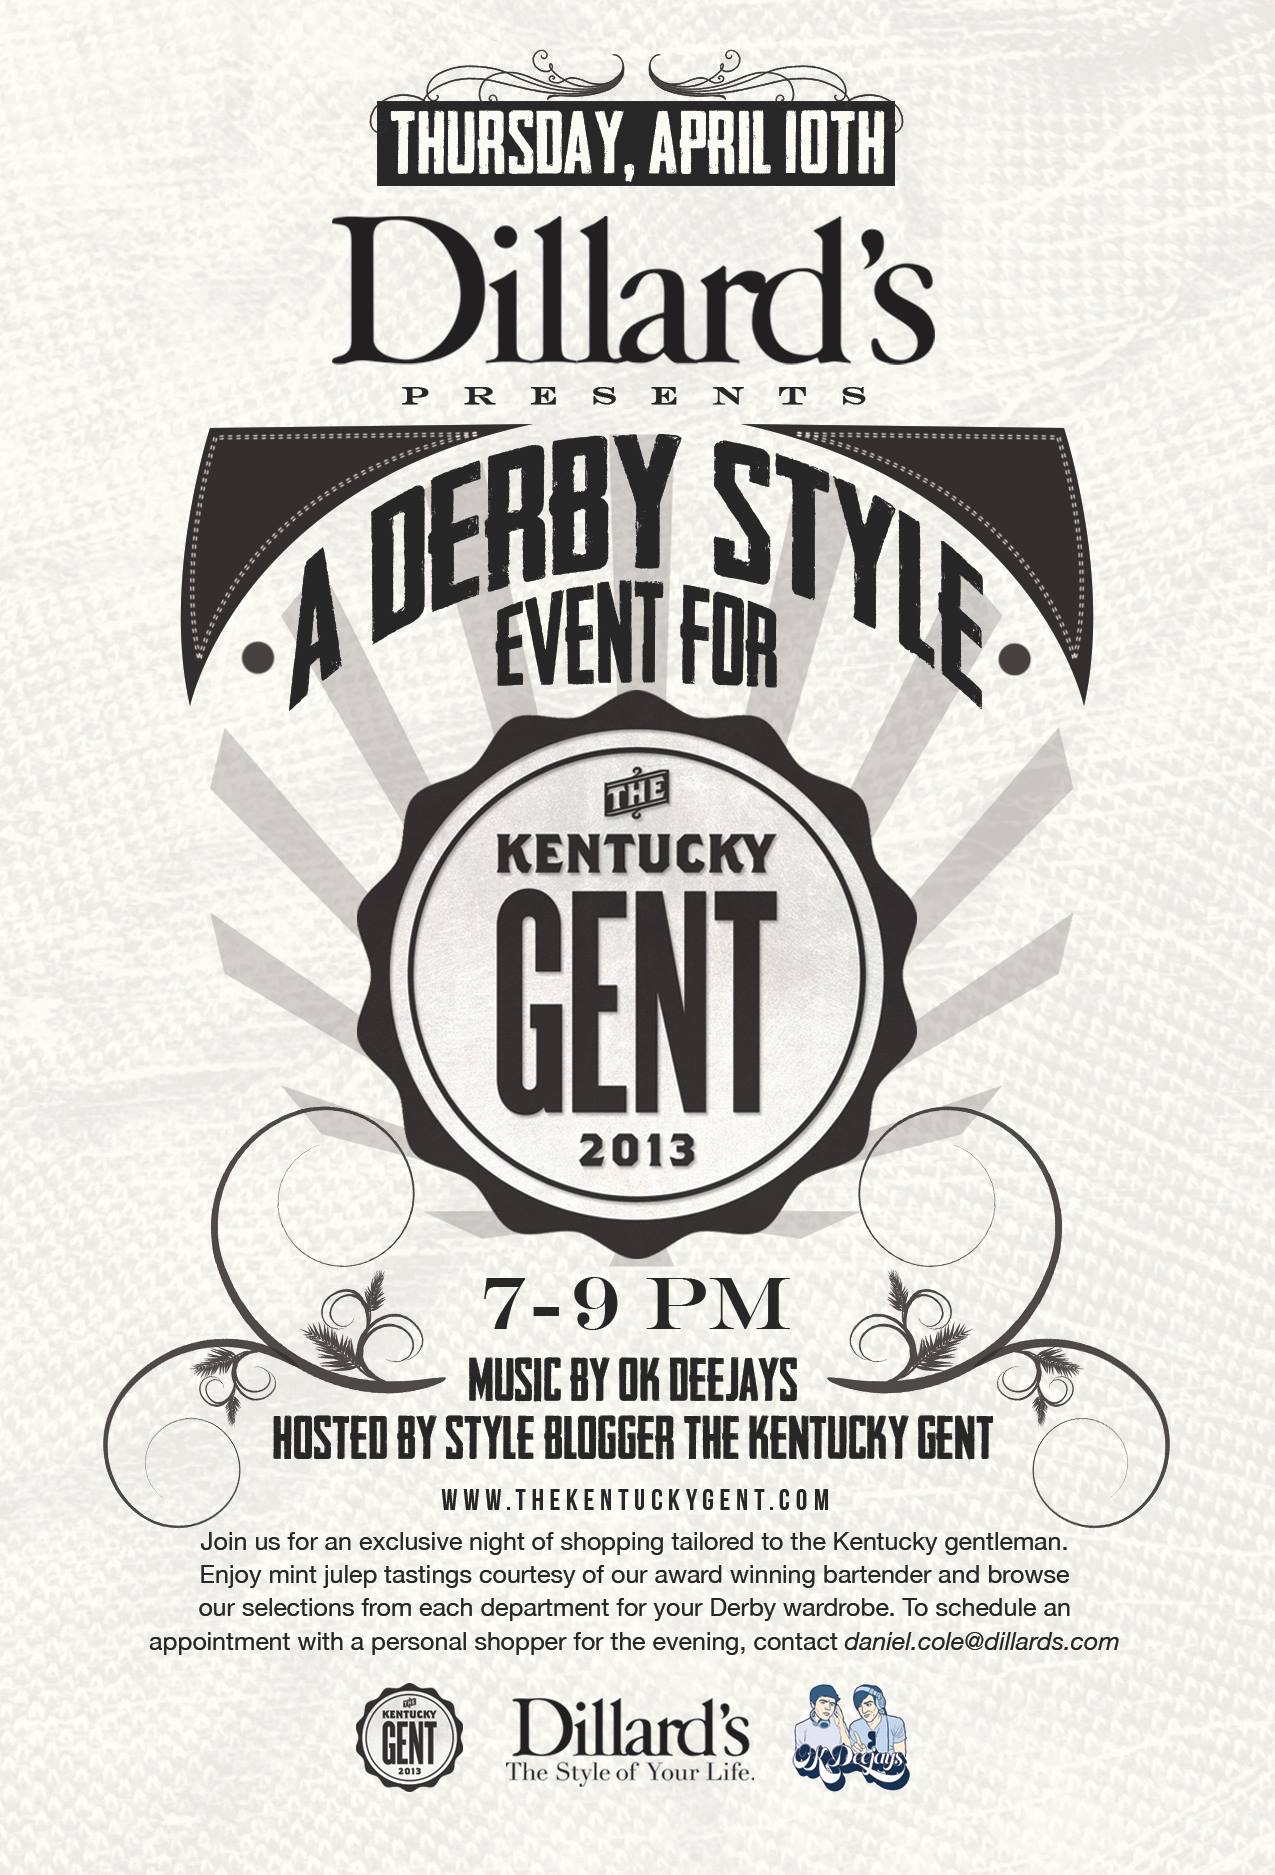 Dillard's Derby Style Event for The Kentucky Gent